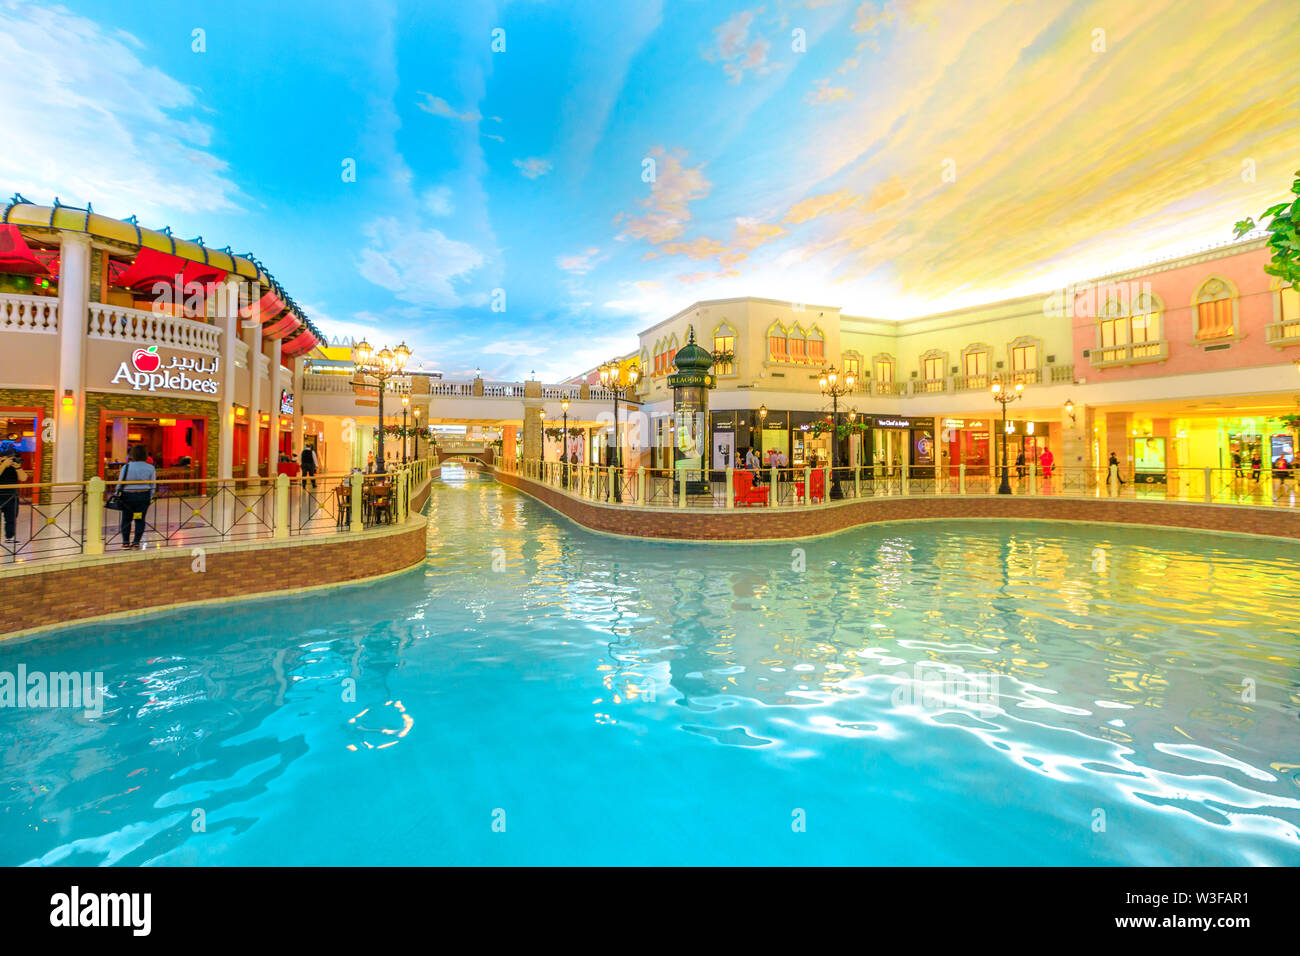 Doha, Qatar - February 21, 2019: venice lagoon in Villaggio Mall, a shopping center in Aspire Zone. Luxury brands, expensive stores and exclusive shop - Stock Image